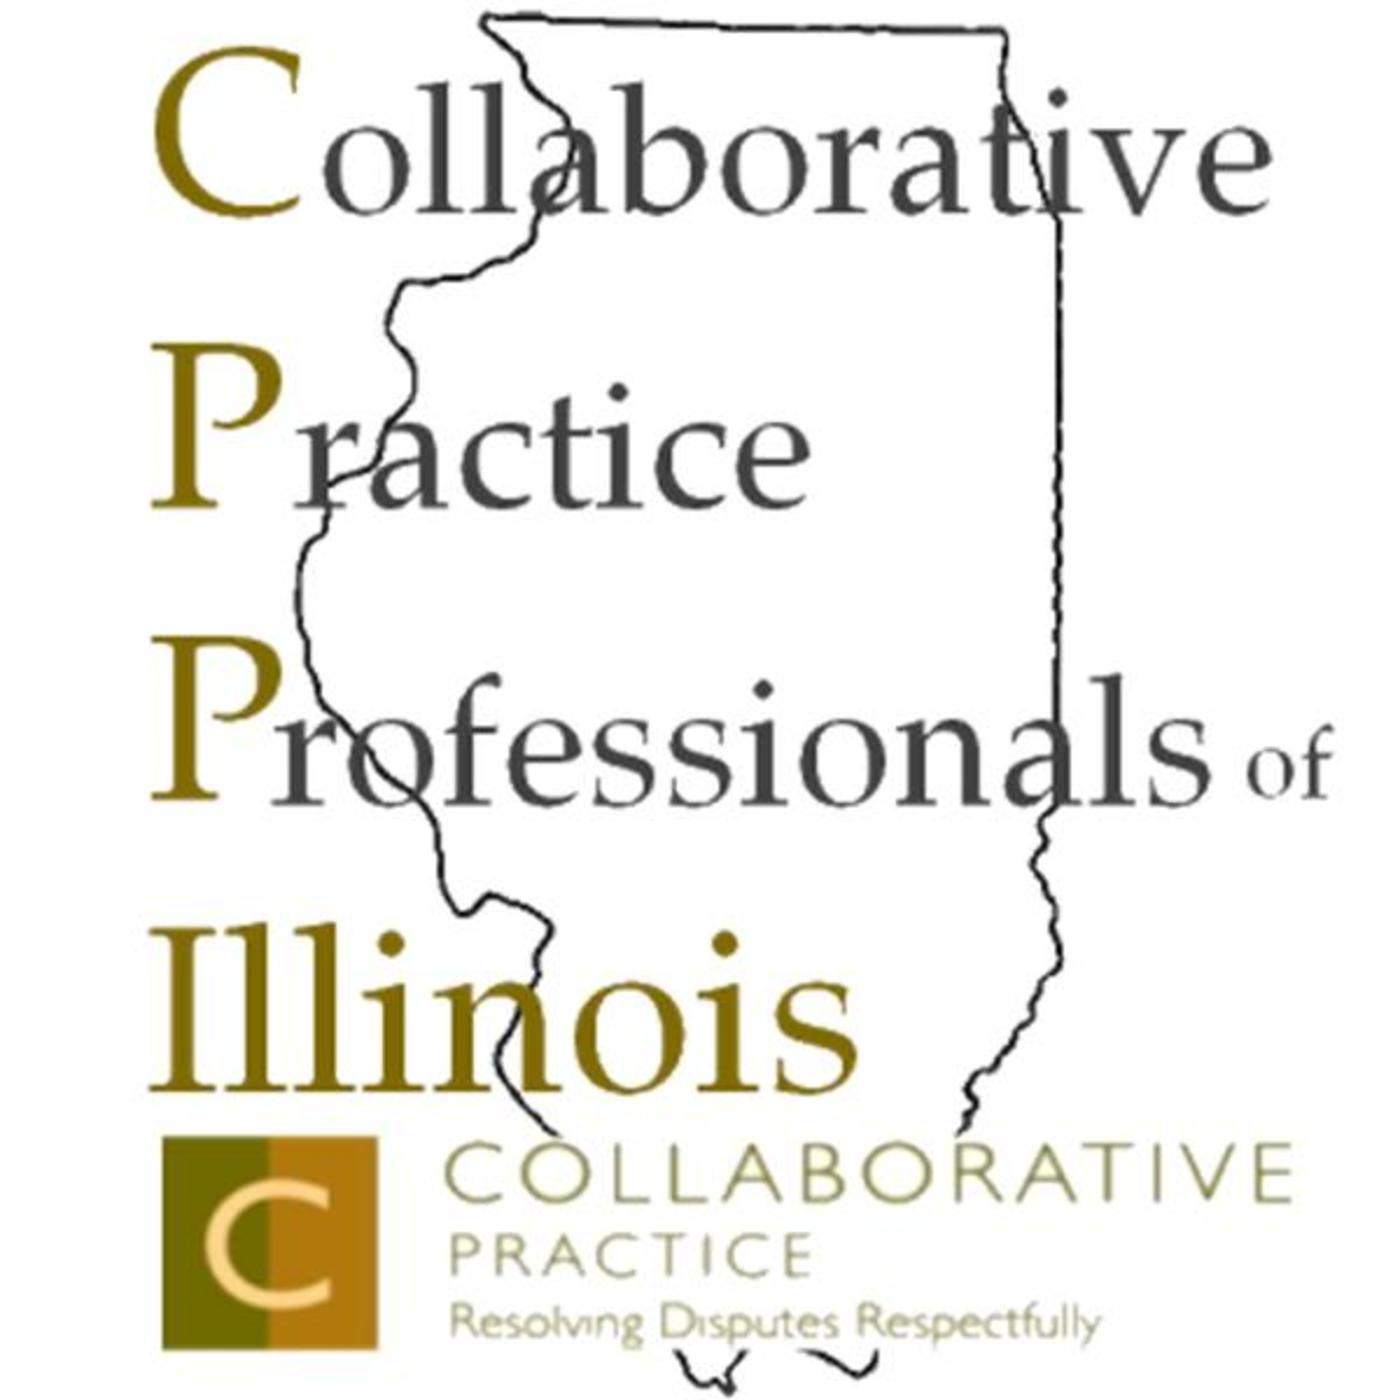 Resolving Disputes Respectfully - Collaborative Practice in IL